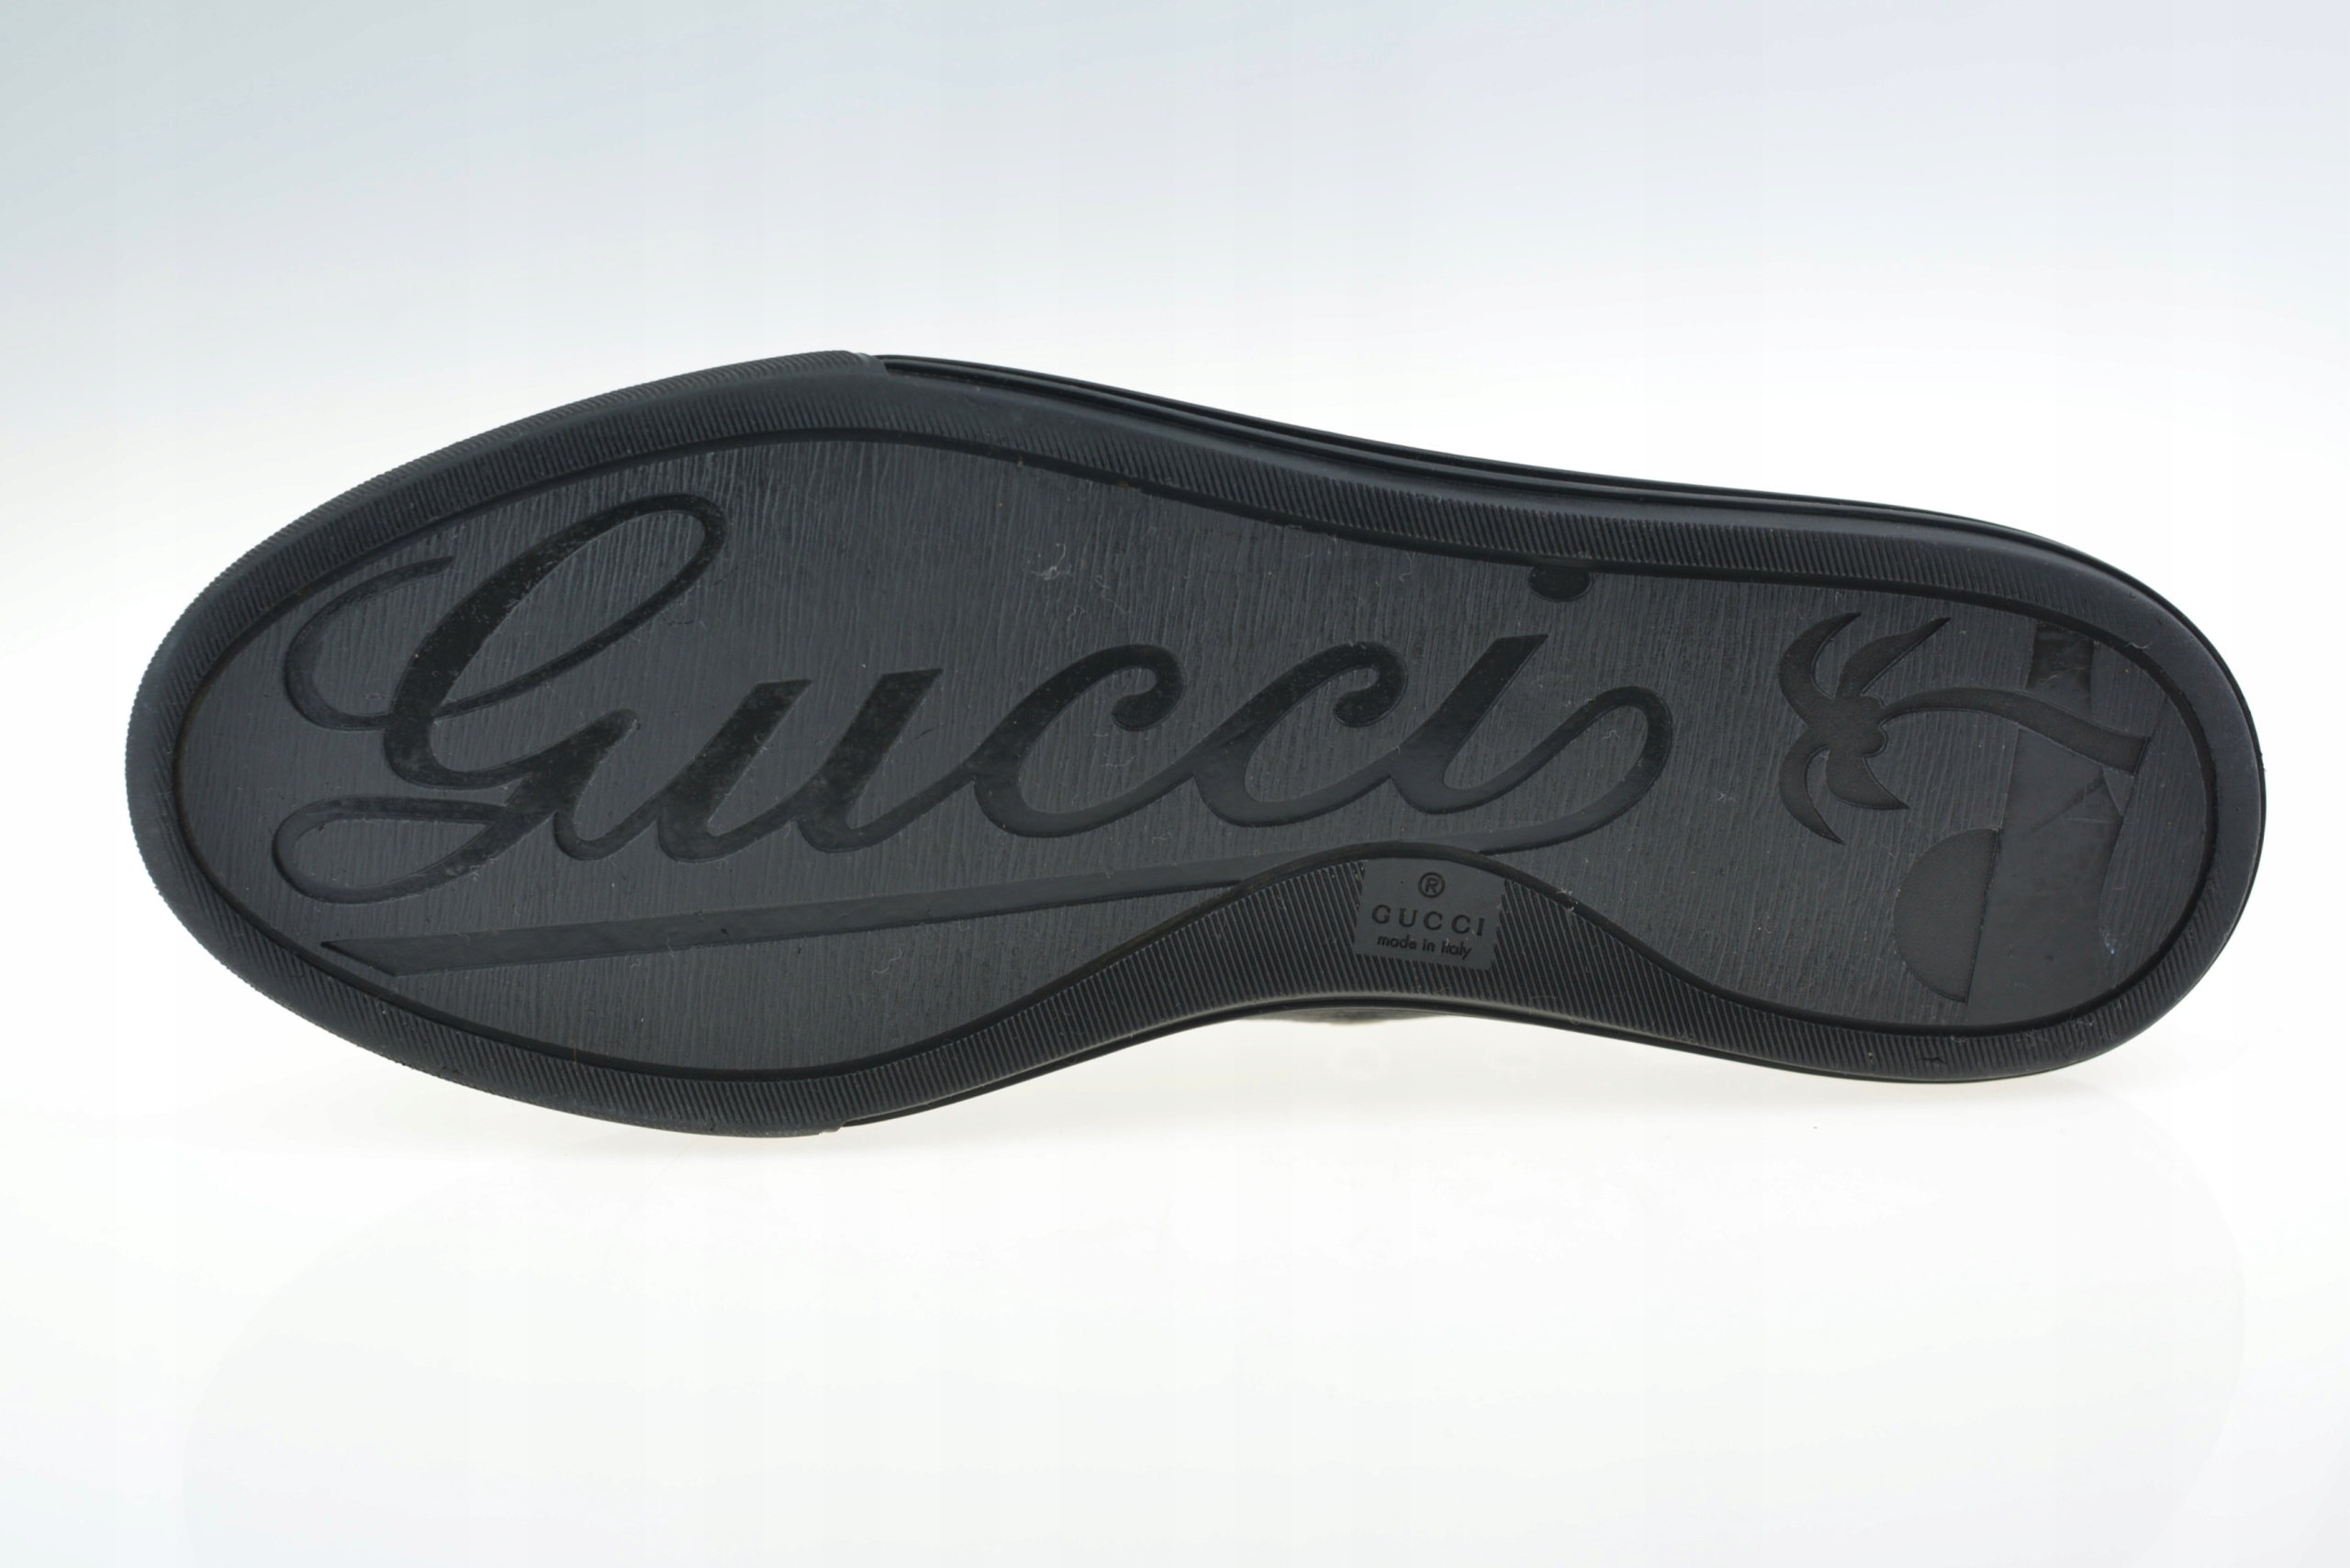 f57b26da50c26 BUTY GUCCI MINERAL BLACK LEATHER ROZ. 41 - 7732215039 - oficjalne ...